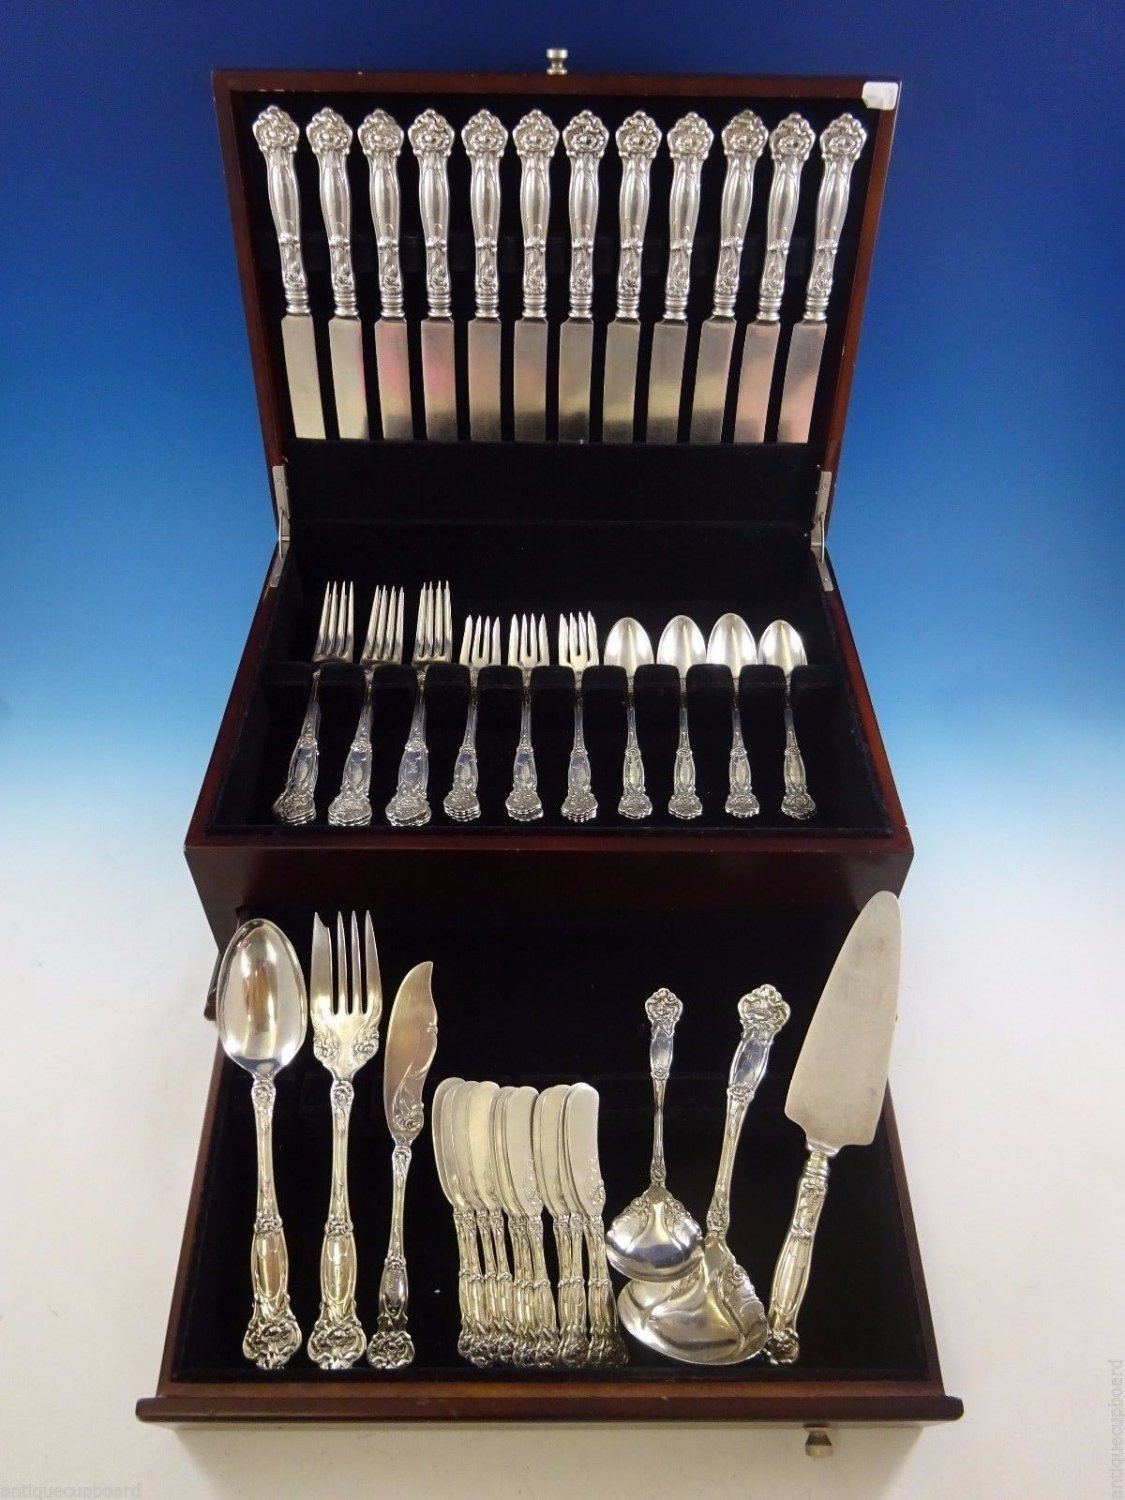 Carnation by Wallace Sterling Silver Flatware Set For 12 Dinner Service 66 Pcs